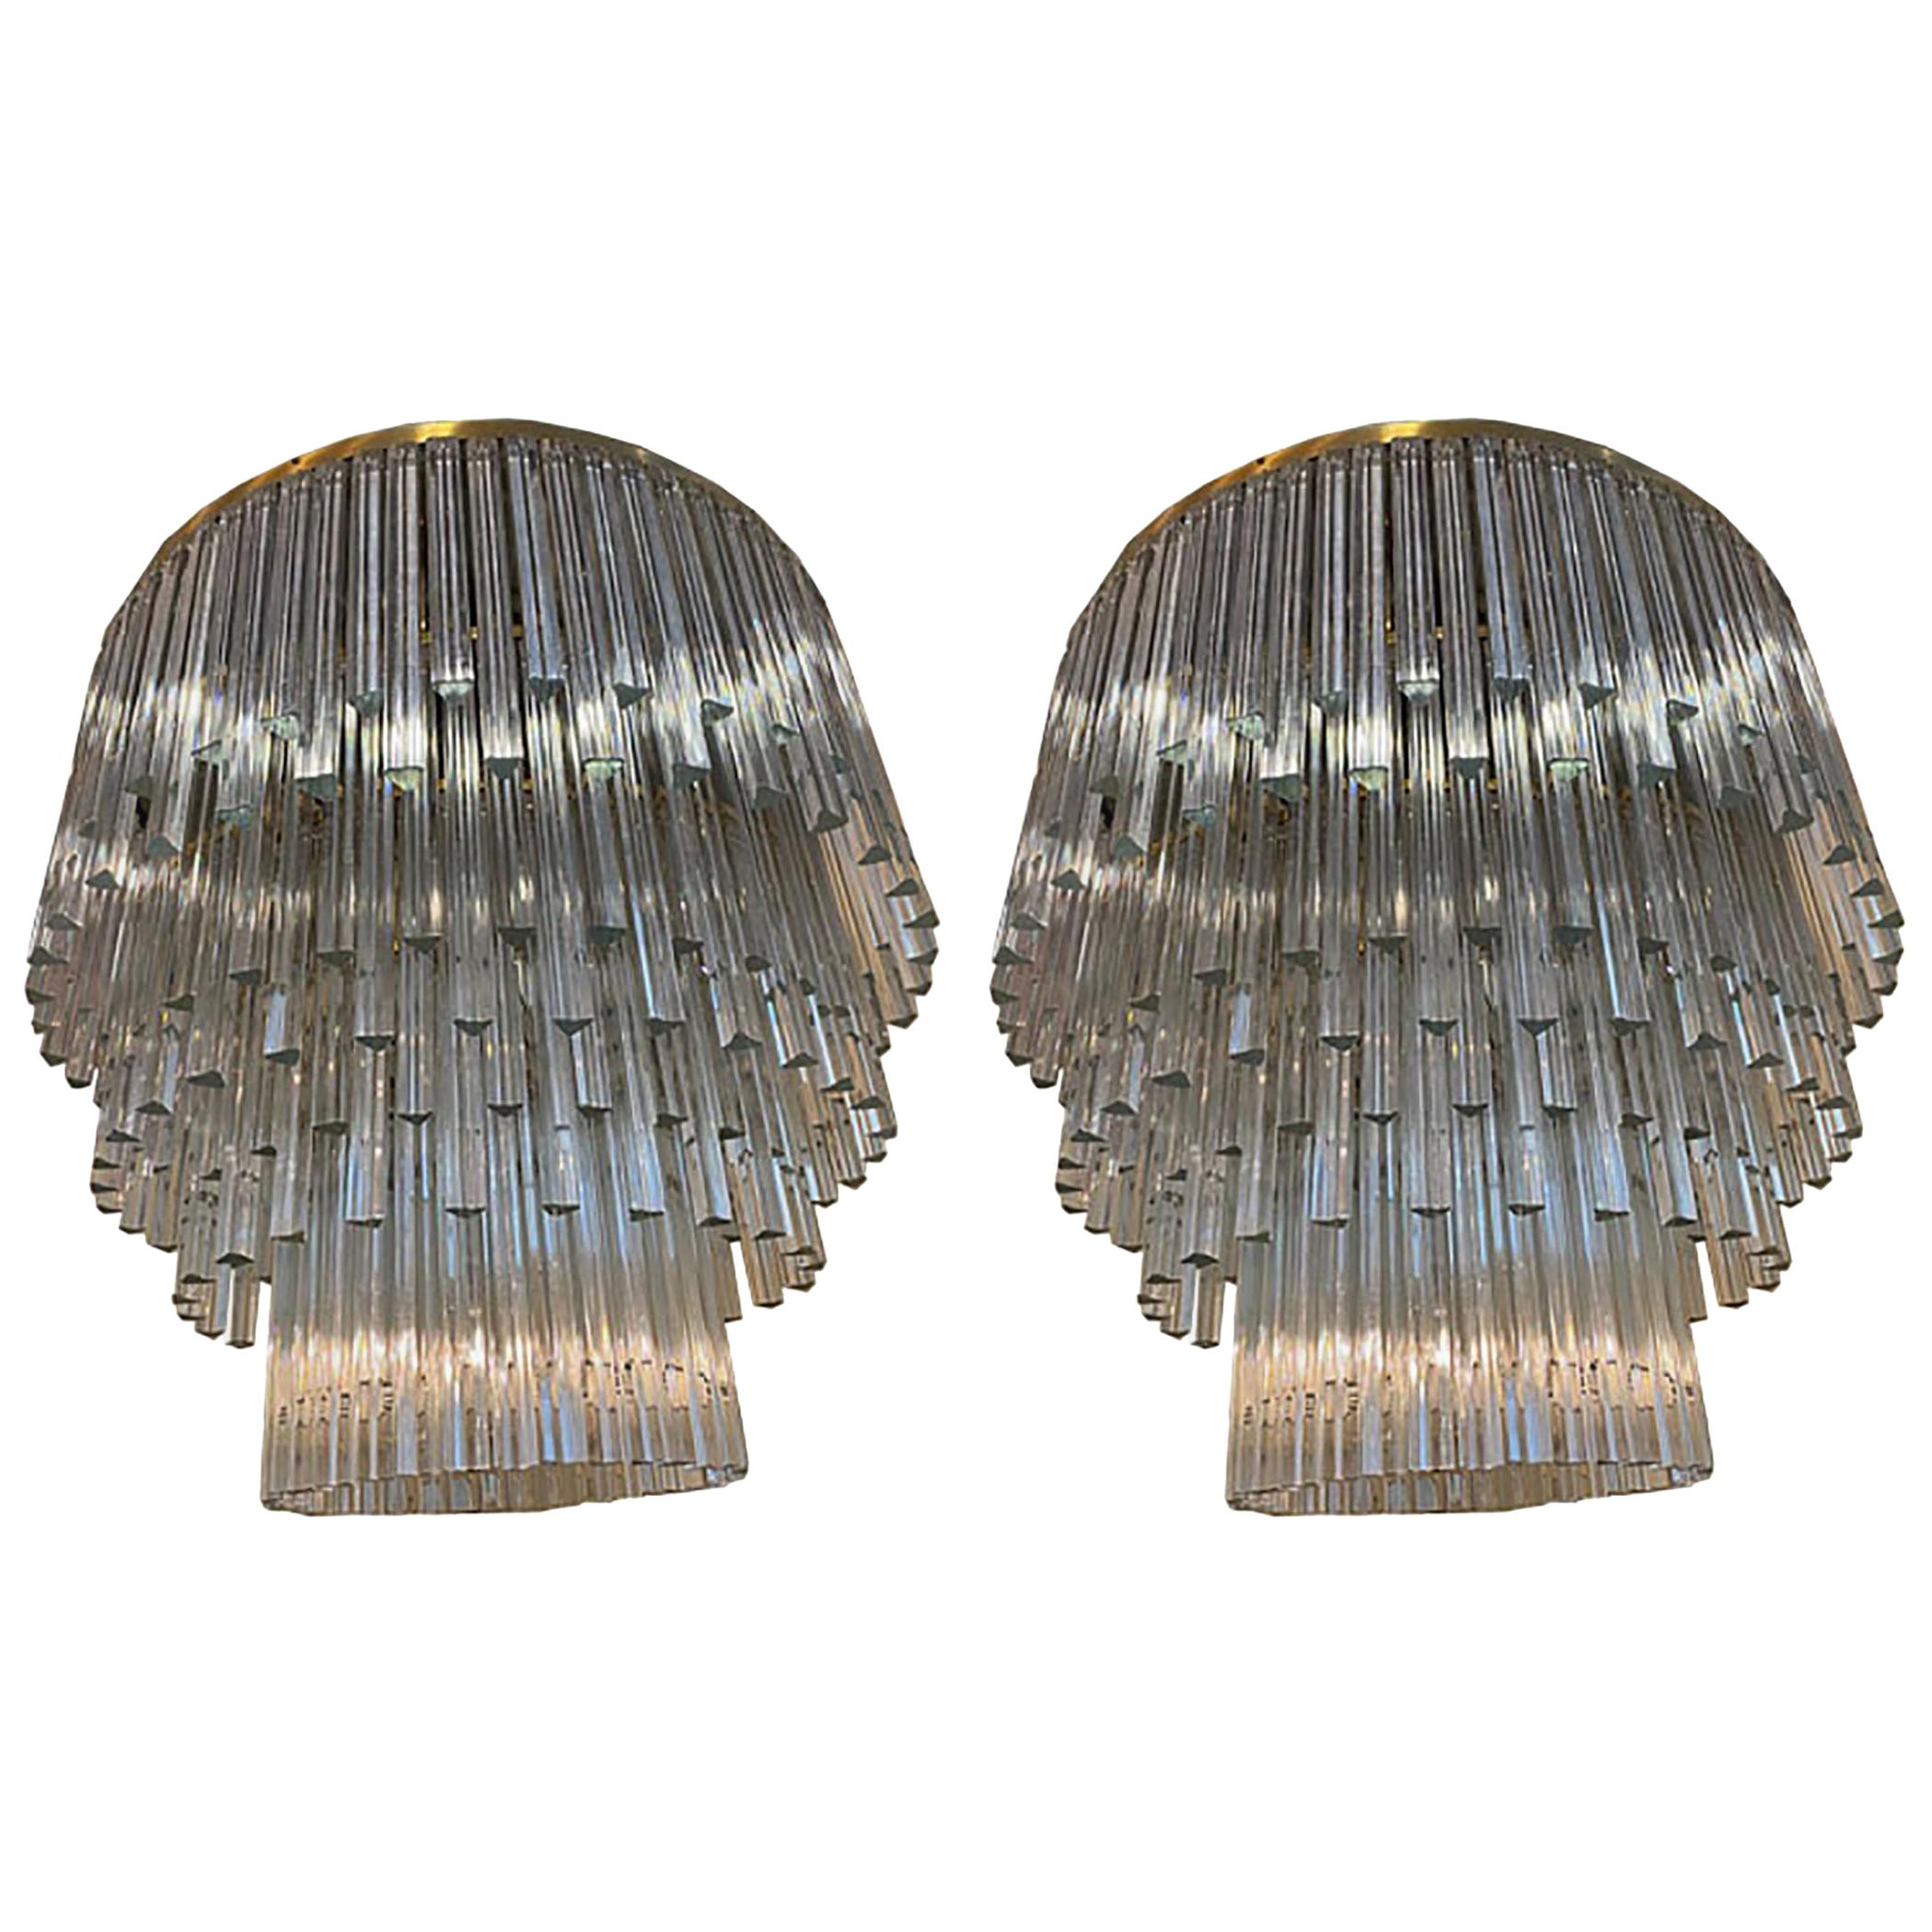 Pair of Chandeliers Venini Style Transparent Prism Triedri, Murano, 1990